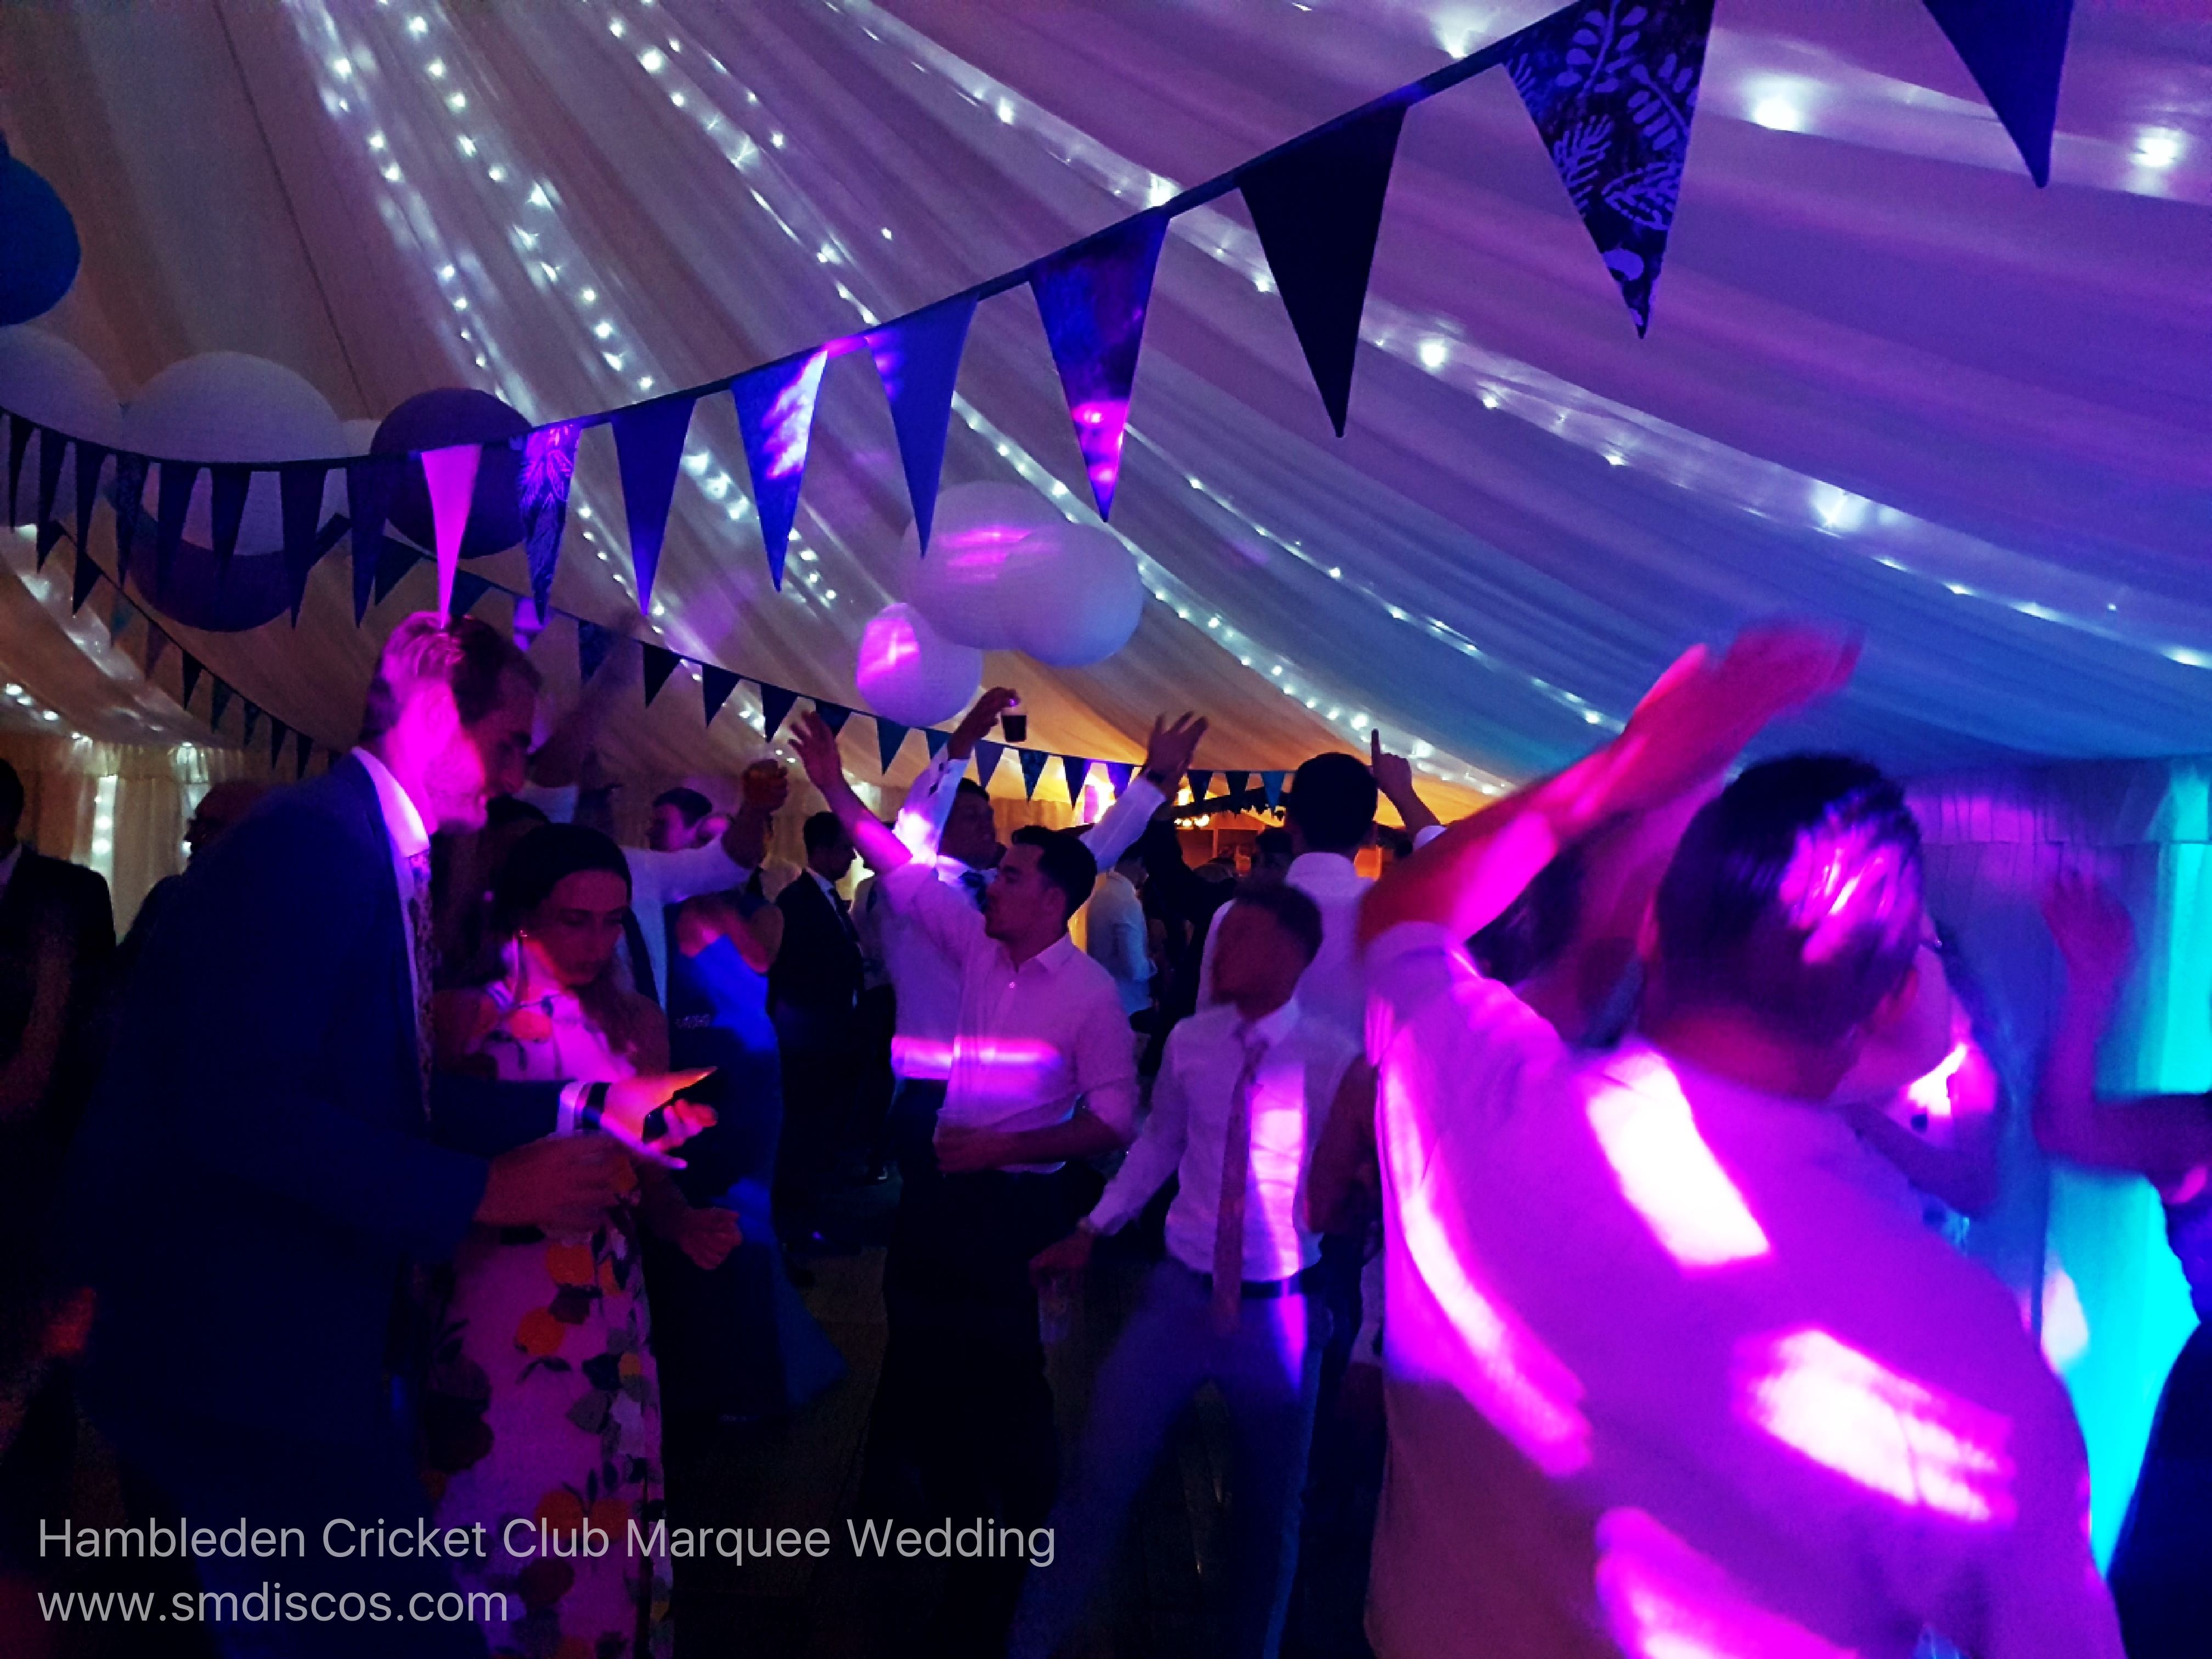 Hands in the air wedding - Henley On Tha